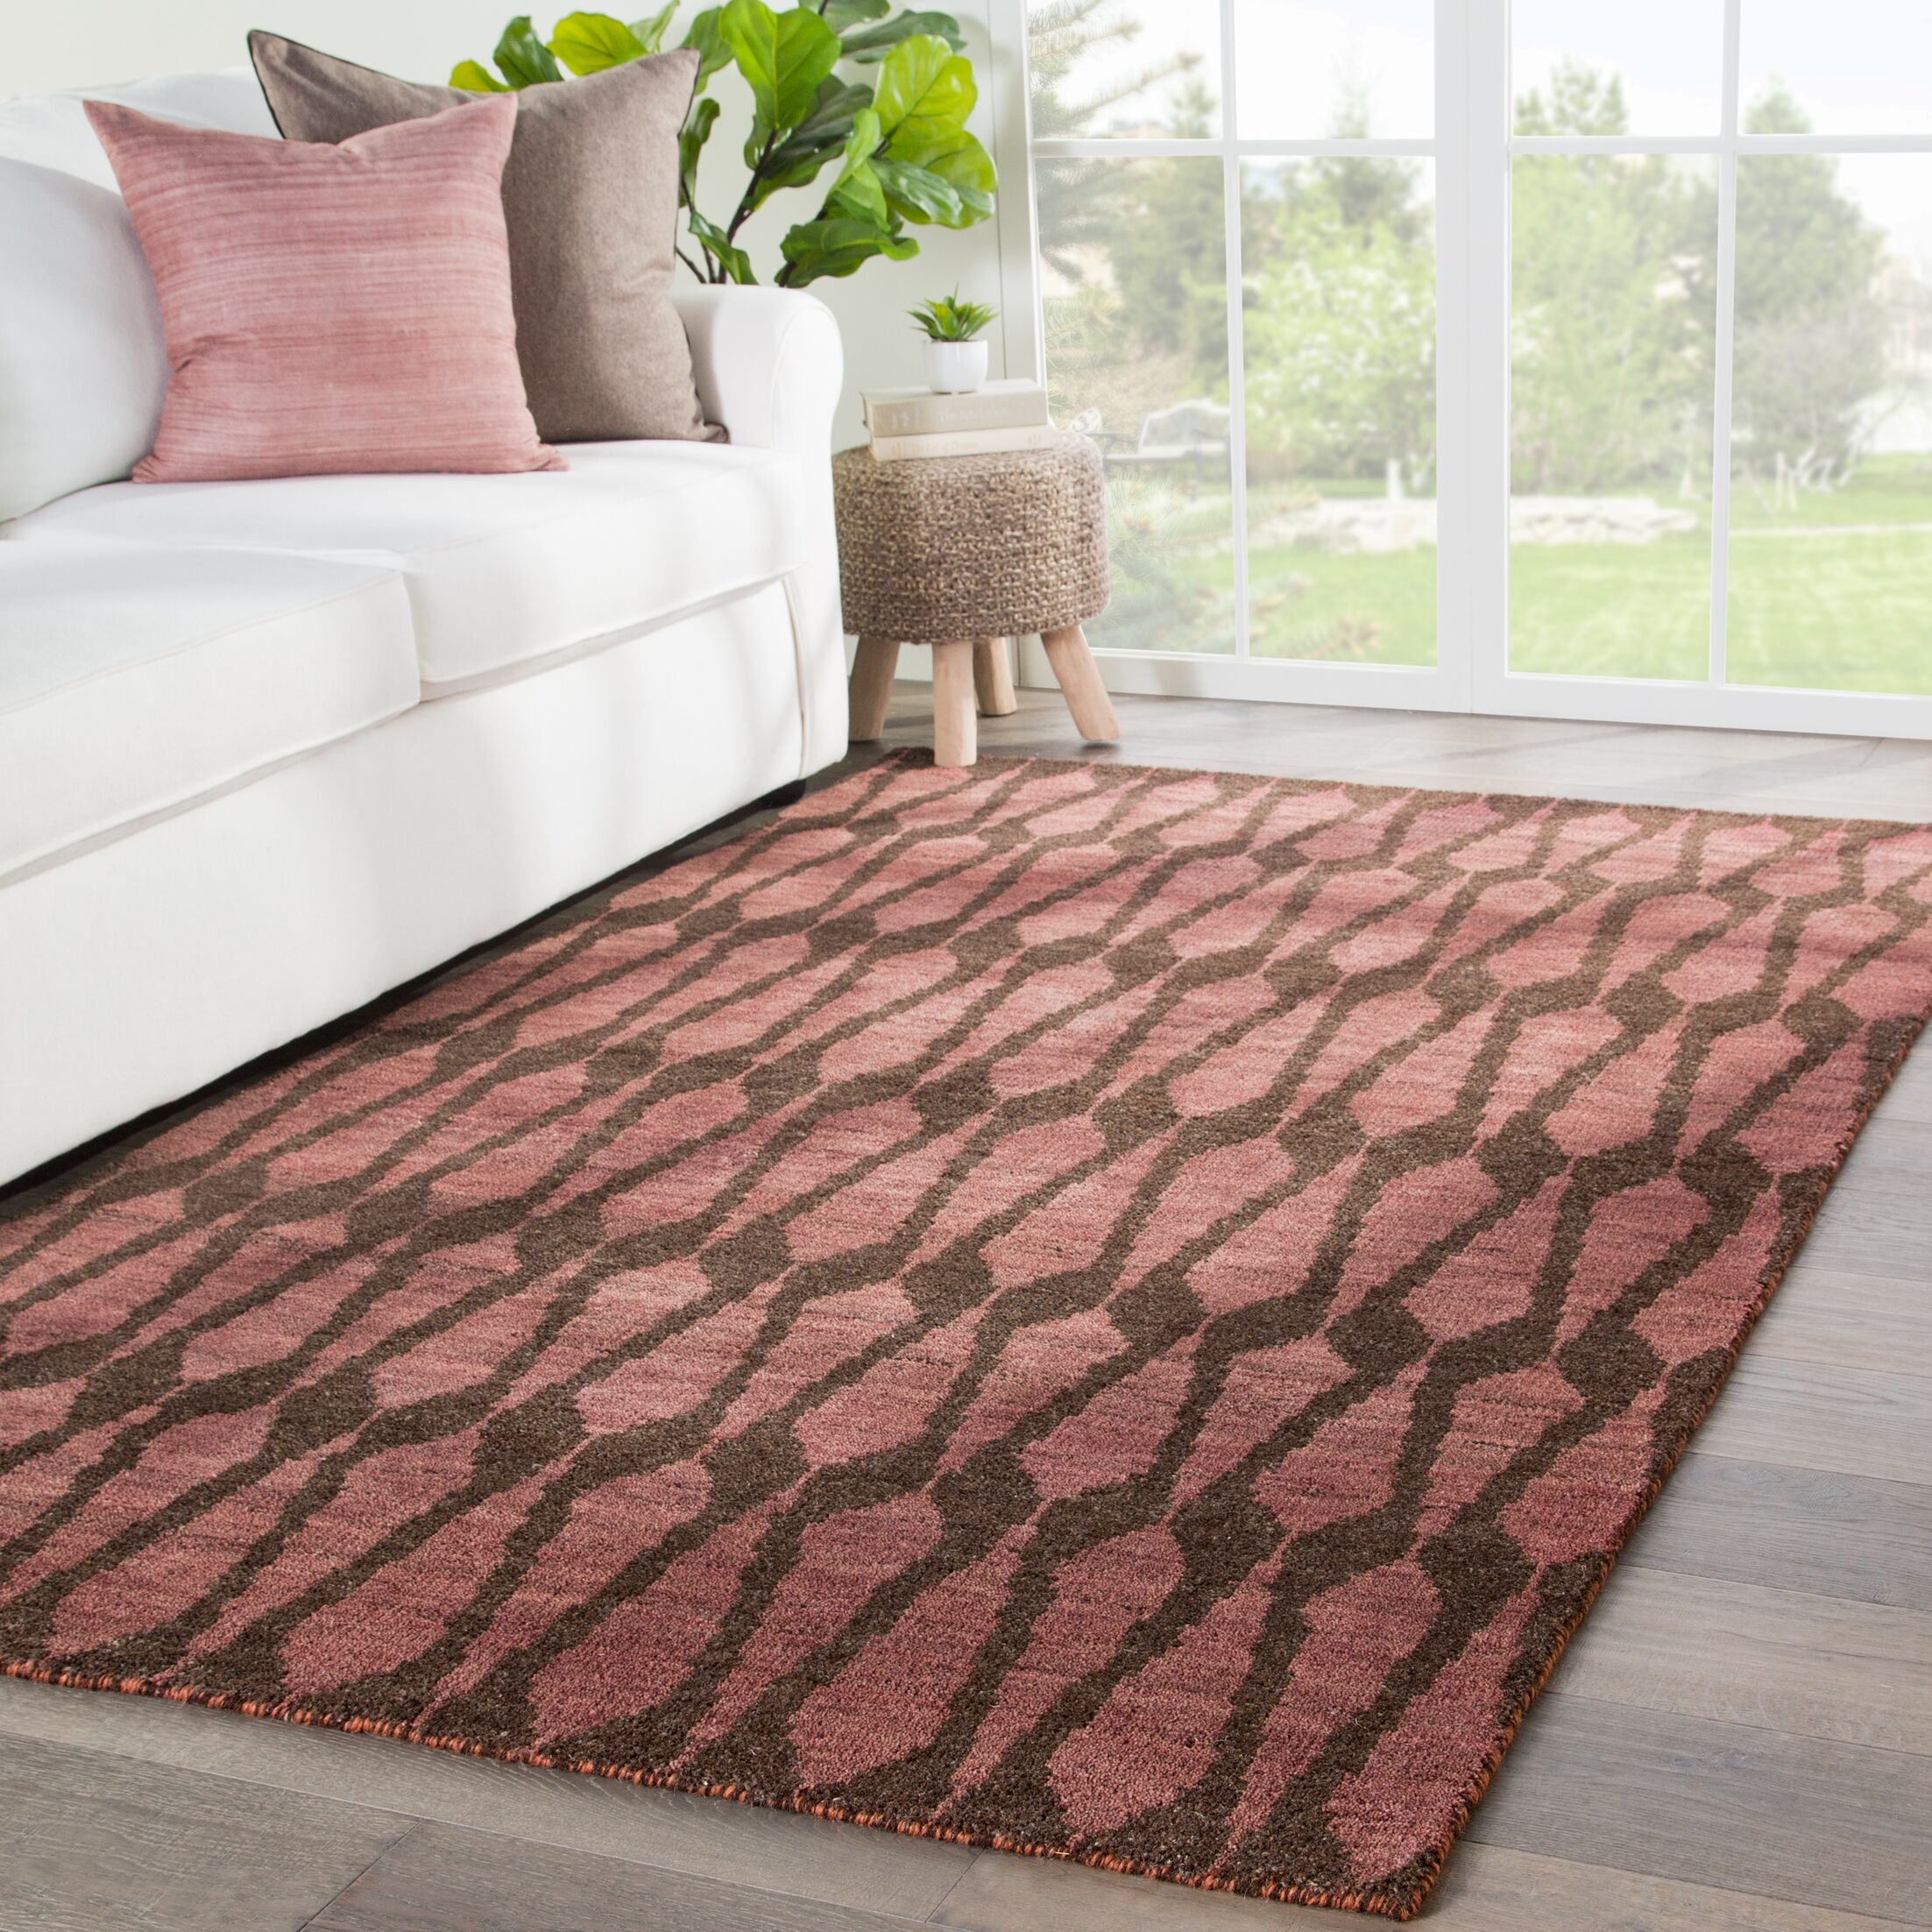 Fielding Hand-Knotted Wool Brown/Red Area Rug Rug Size: Rectangle 8'6